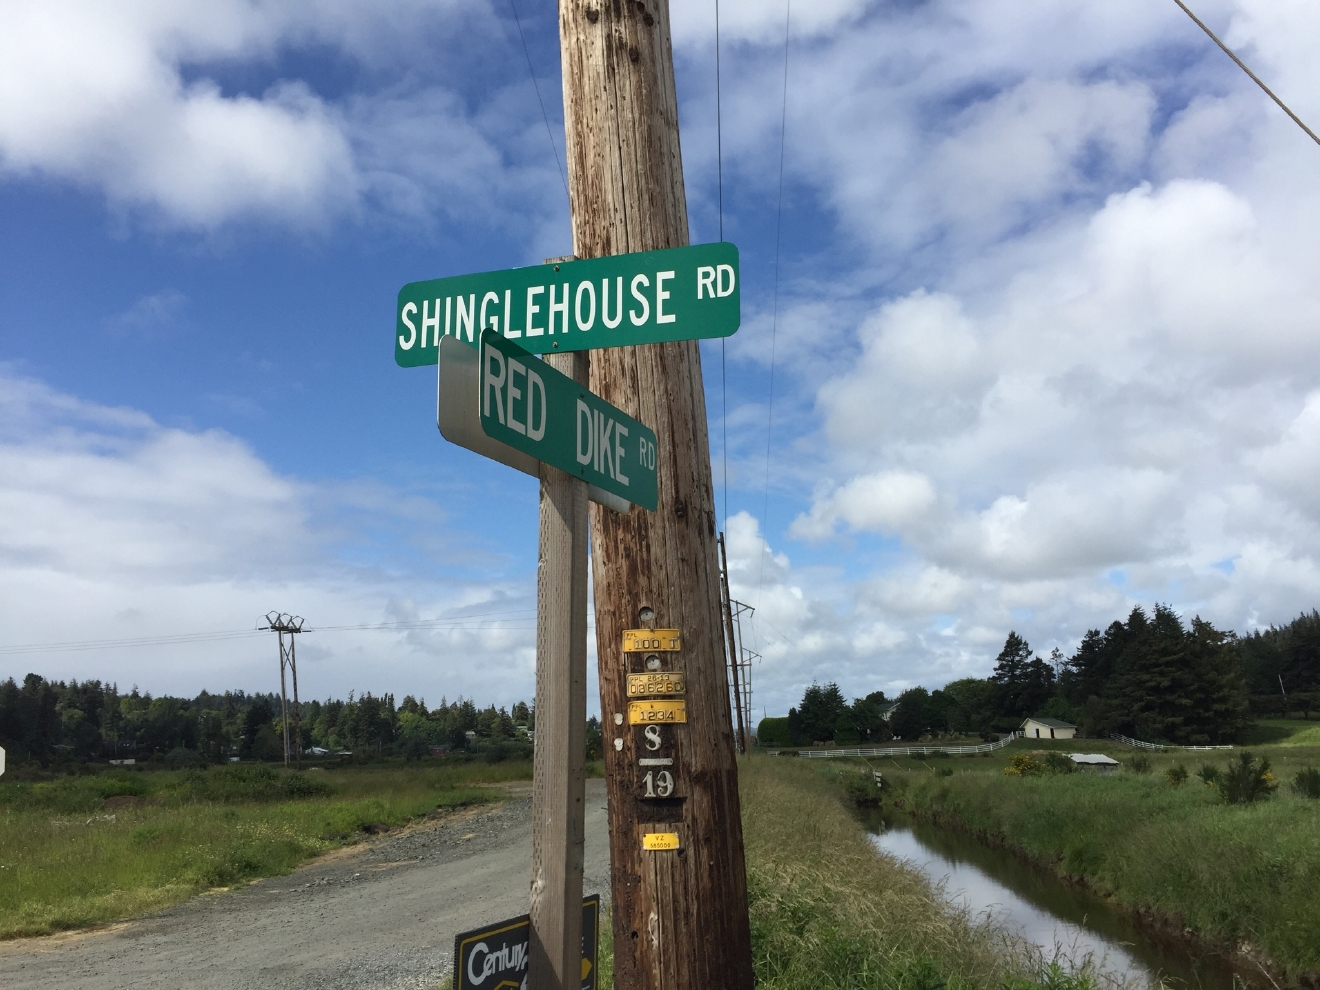 shinglehouse single guys Welcome to the shinglehouse borough website we hope that you will find this site useful to you for obtaining information about us and the services we provide to our residents.